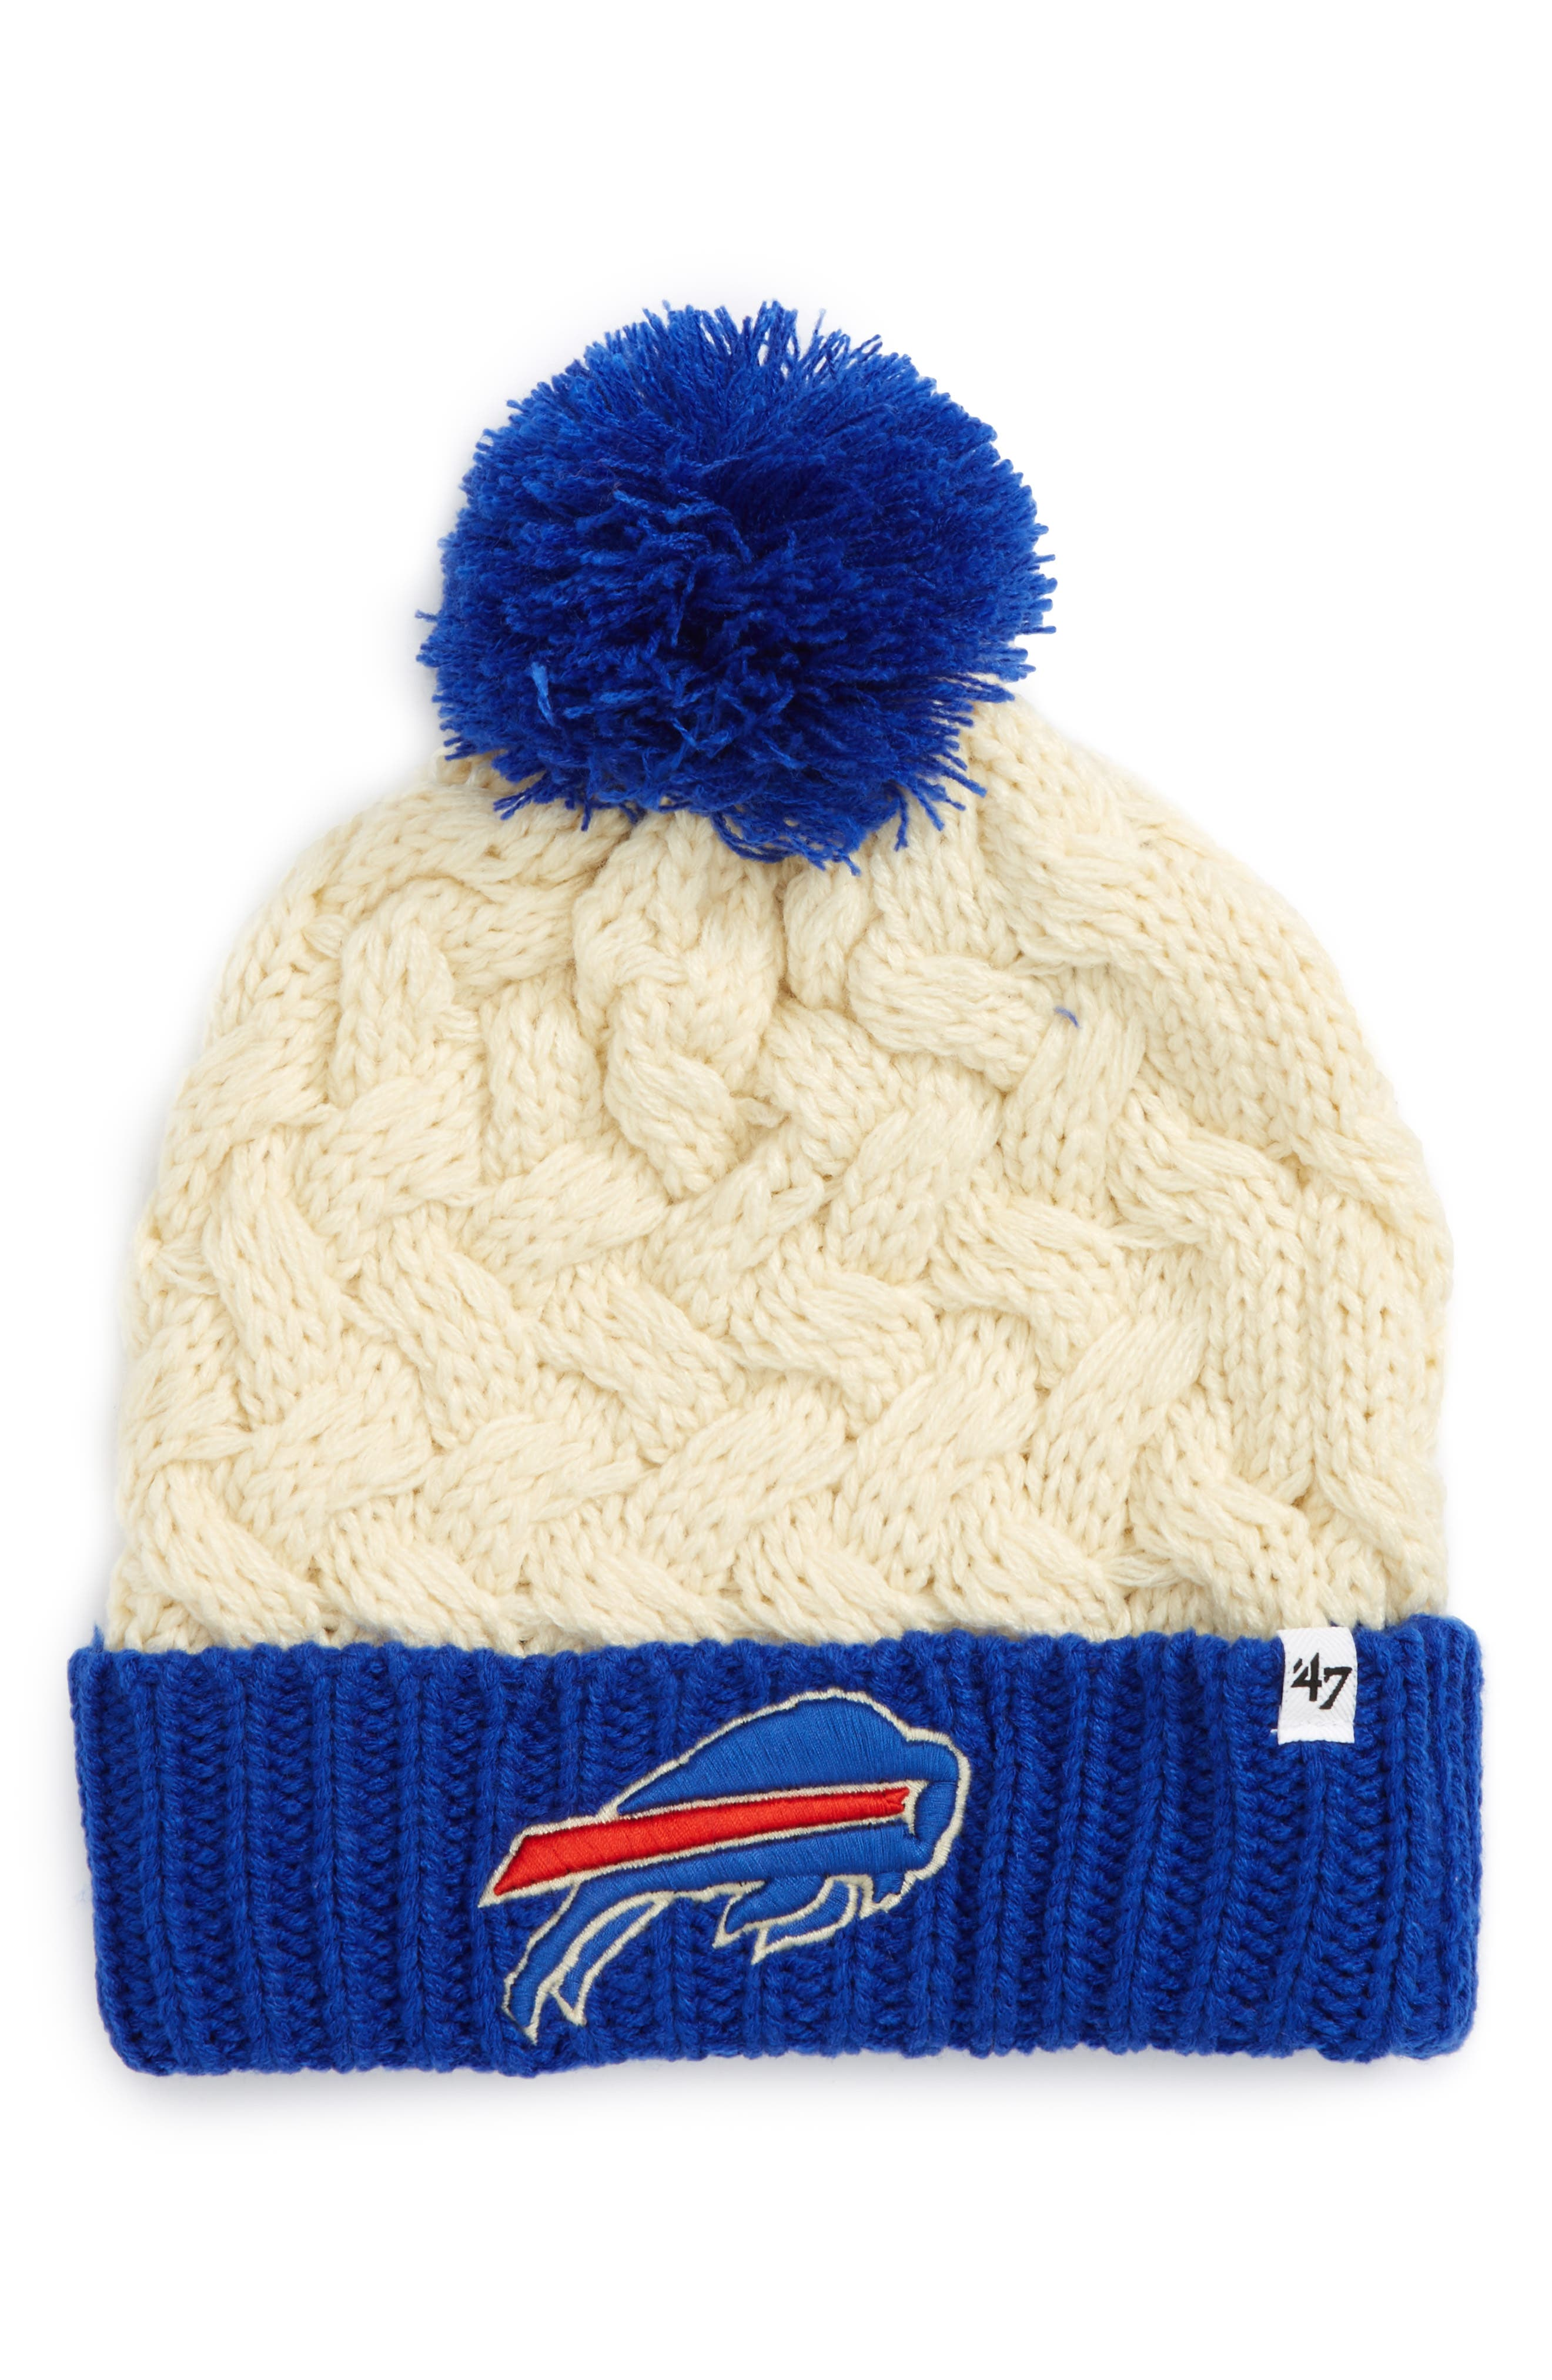 Alternate Image 1 Selected - '47 Matterhorn Buffalo Bills Beanie